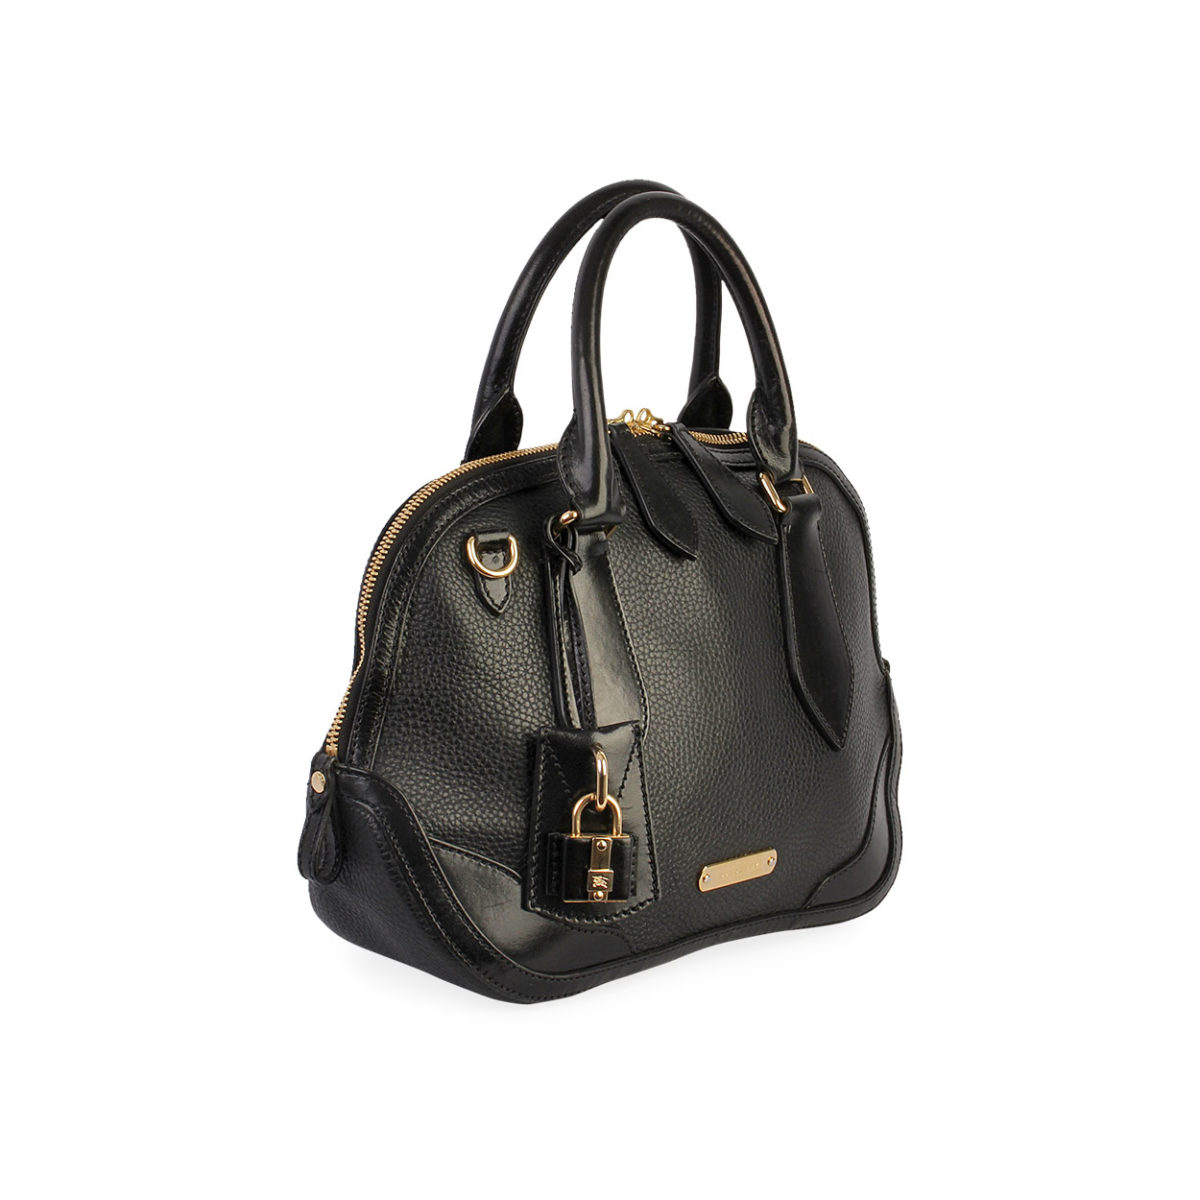 8693da27ad0 BURBERRY Grainy Leather Small Orchard Bowling Bag Black | Luxity